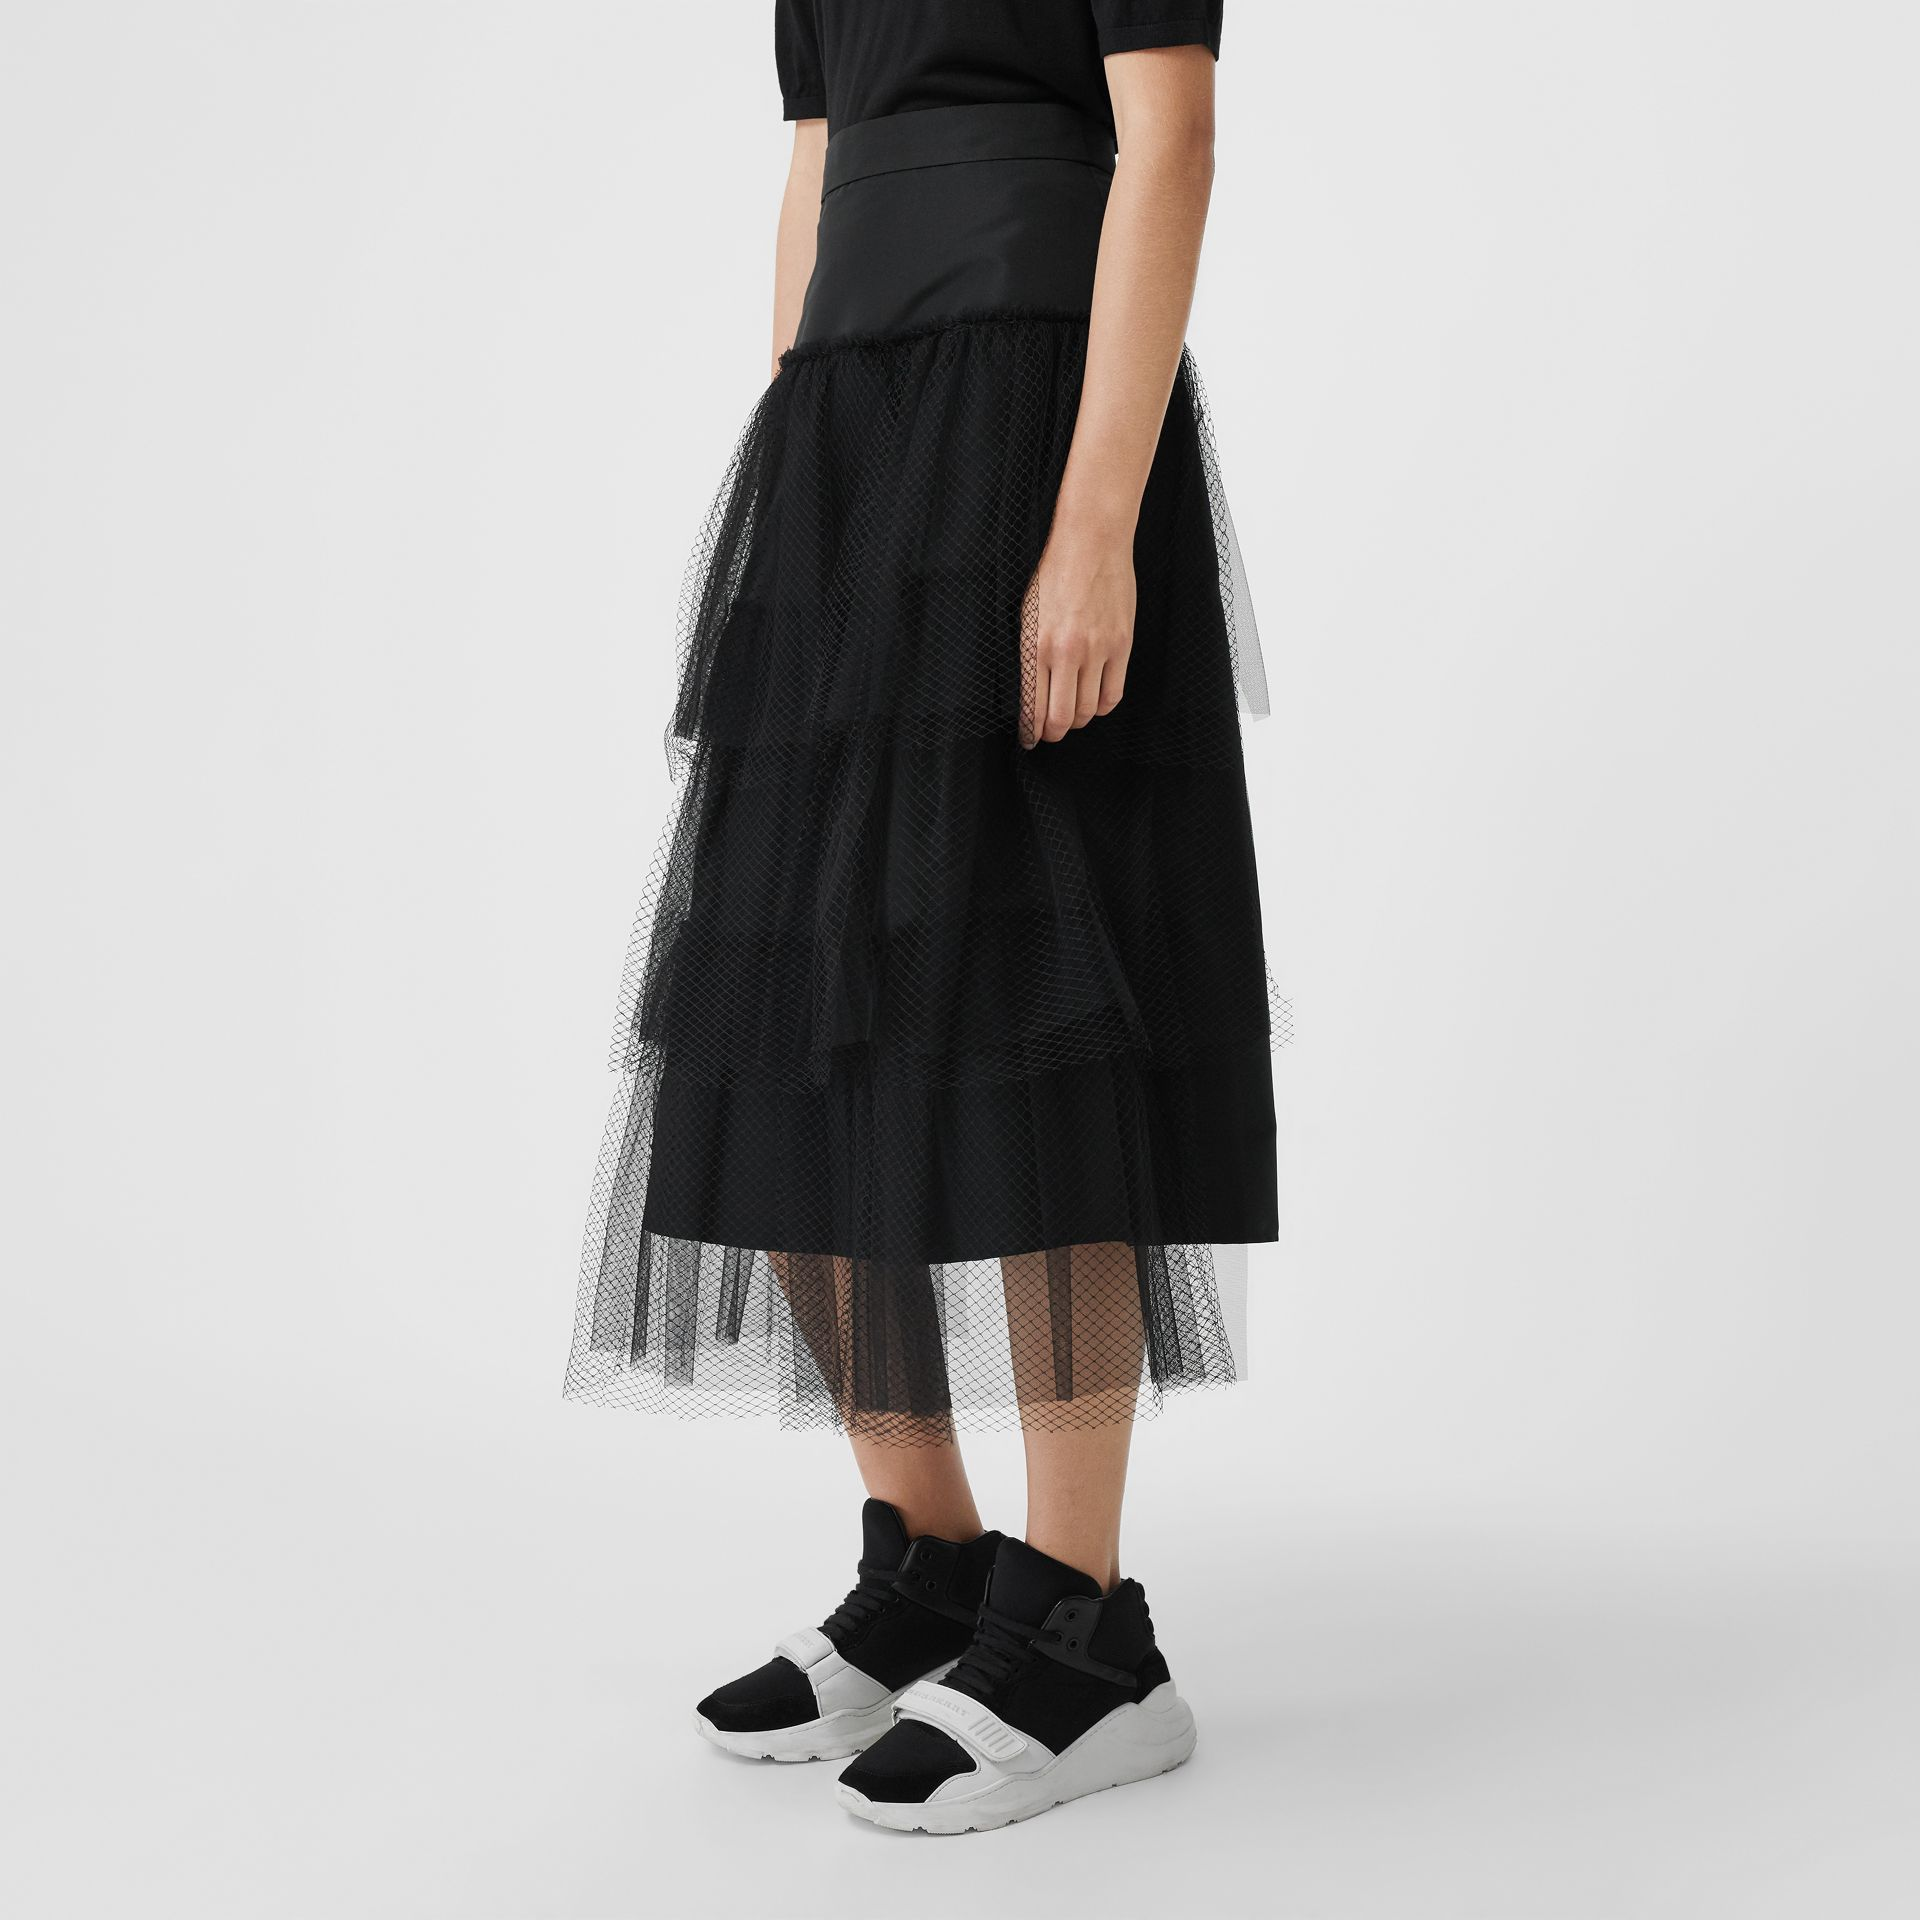 Tiered Tulle A-line Skirt in Black - Women | Burberry - gallery image 4